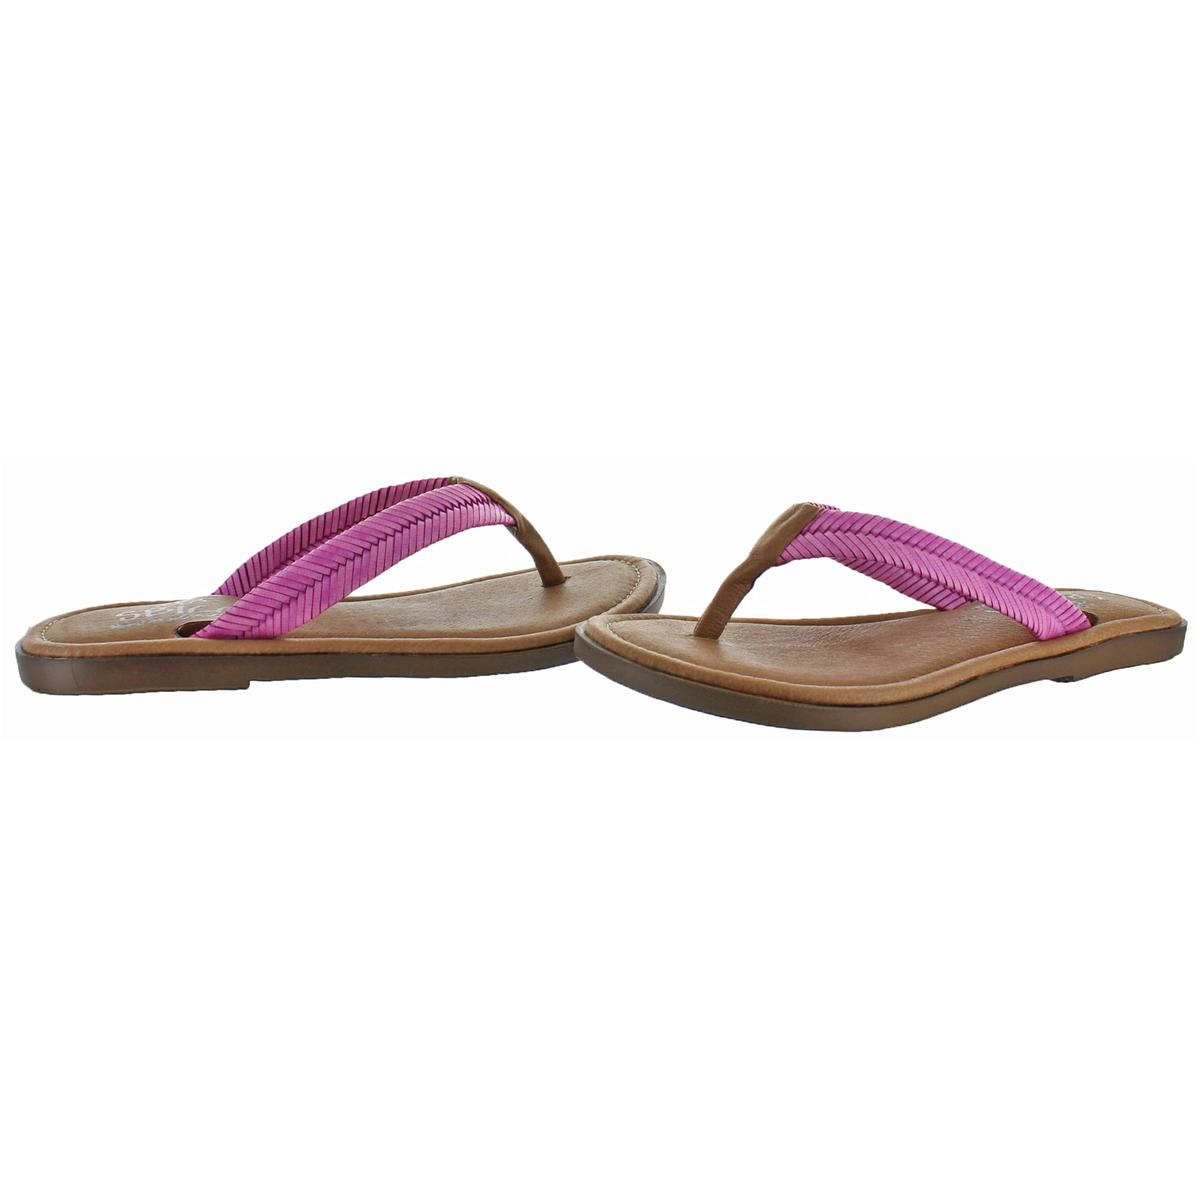 Sbicca-Elonara-Women-039-s-Leather-Slip-On-Chevron-Braided-Thong-Sandals-Shoes thumbnail 3